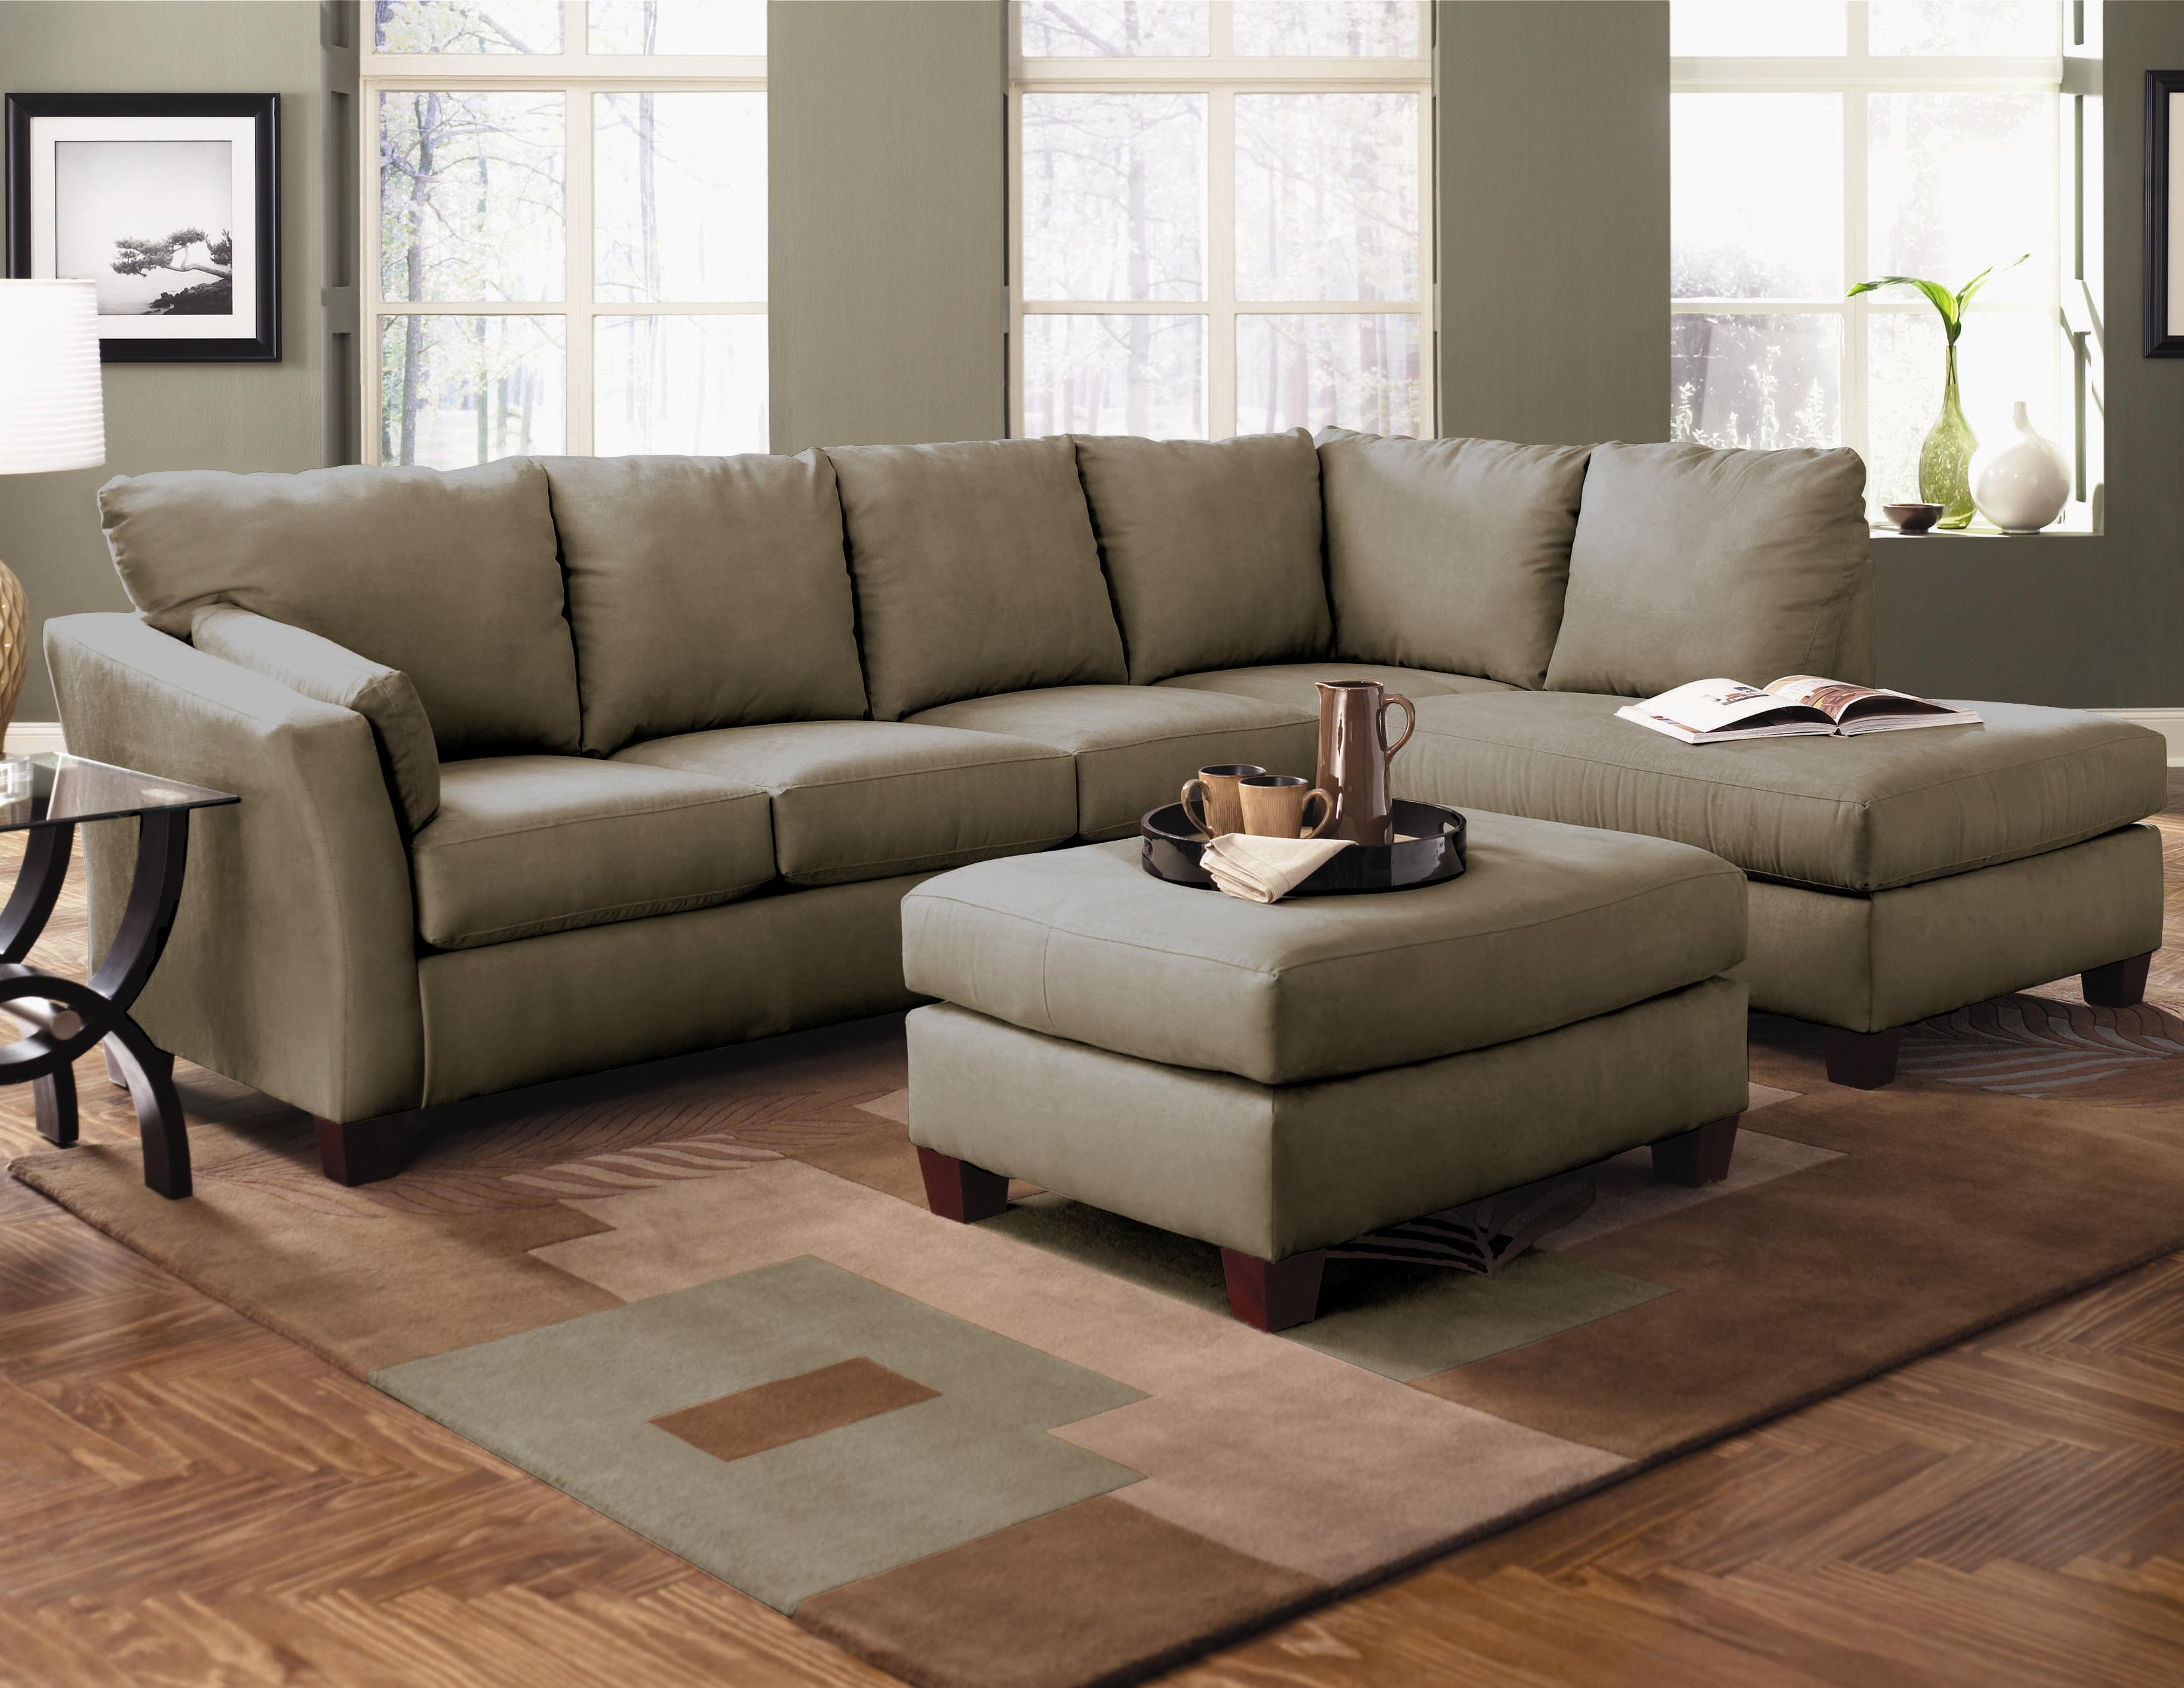 sofa mart indianapolis bed convertible home comfort sofas zeitraum side